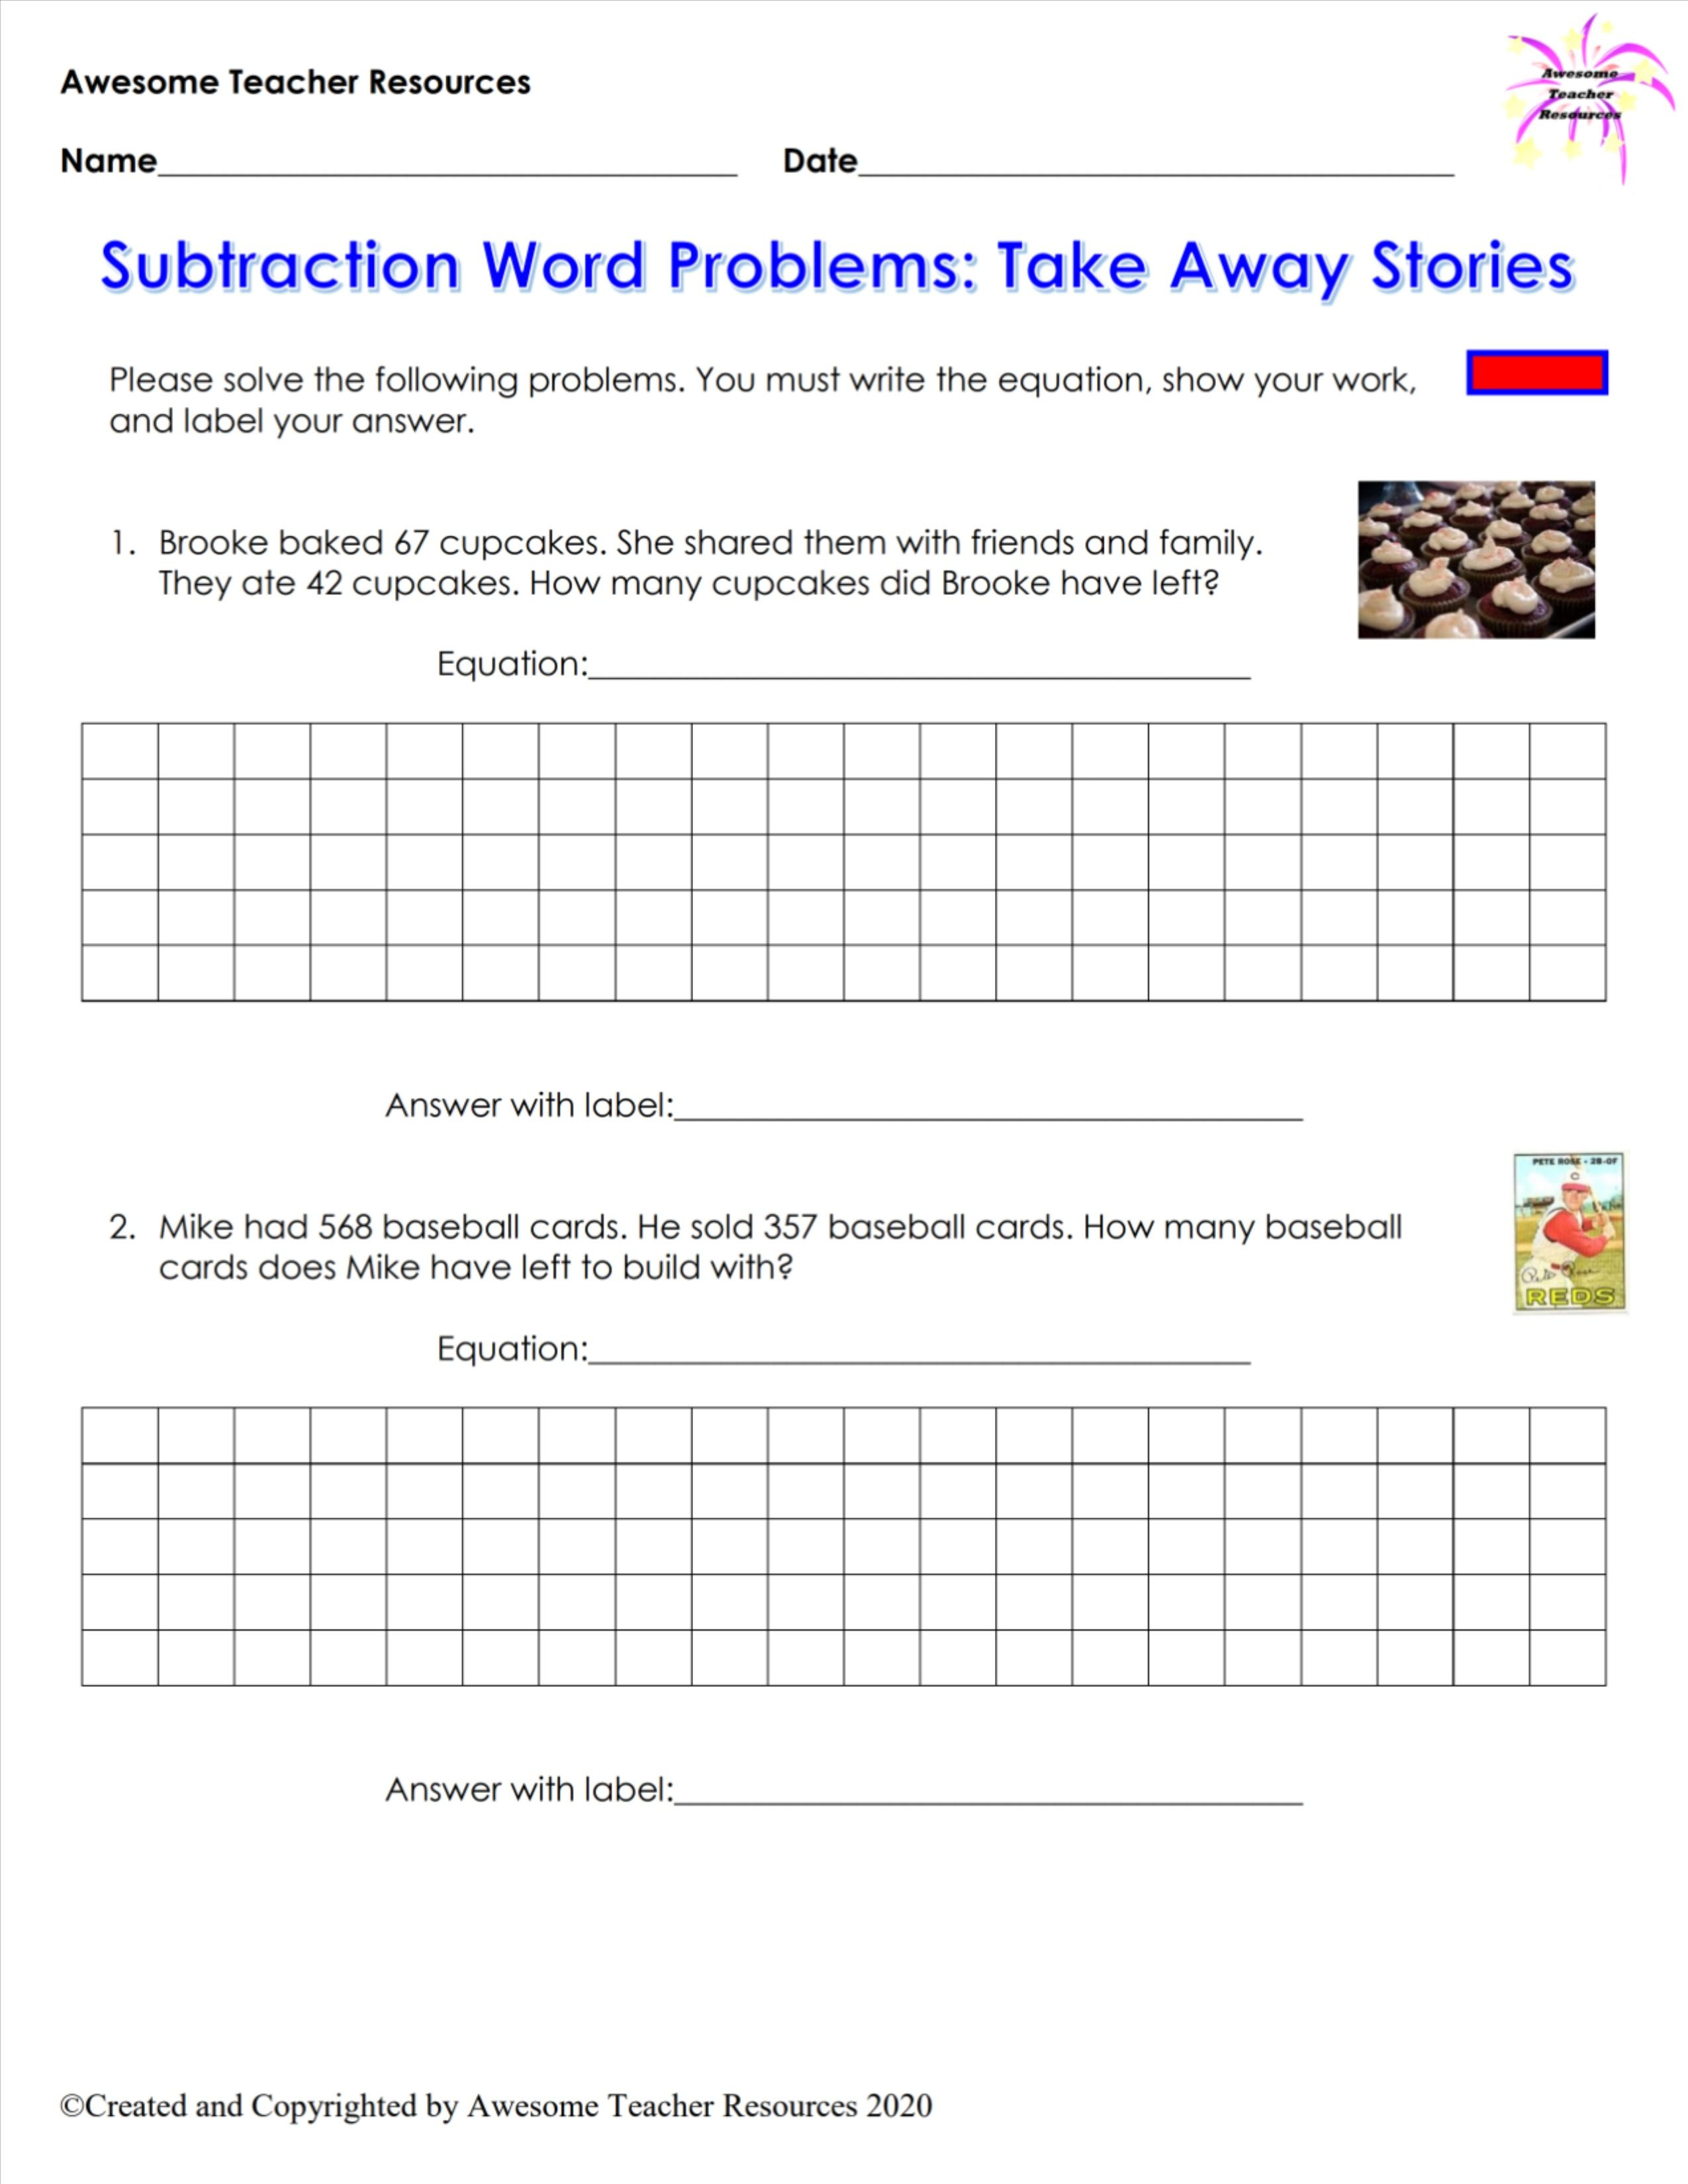 Subtraction Word Problems Take Away Stories Worksheet 1